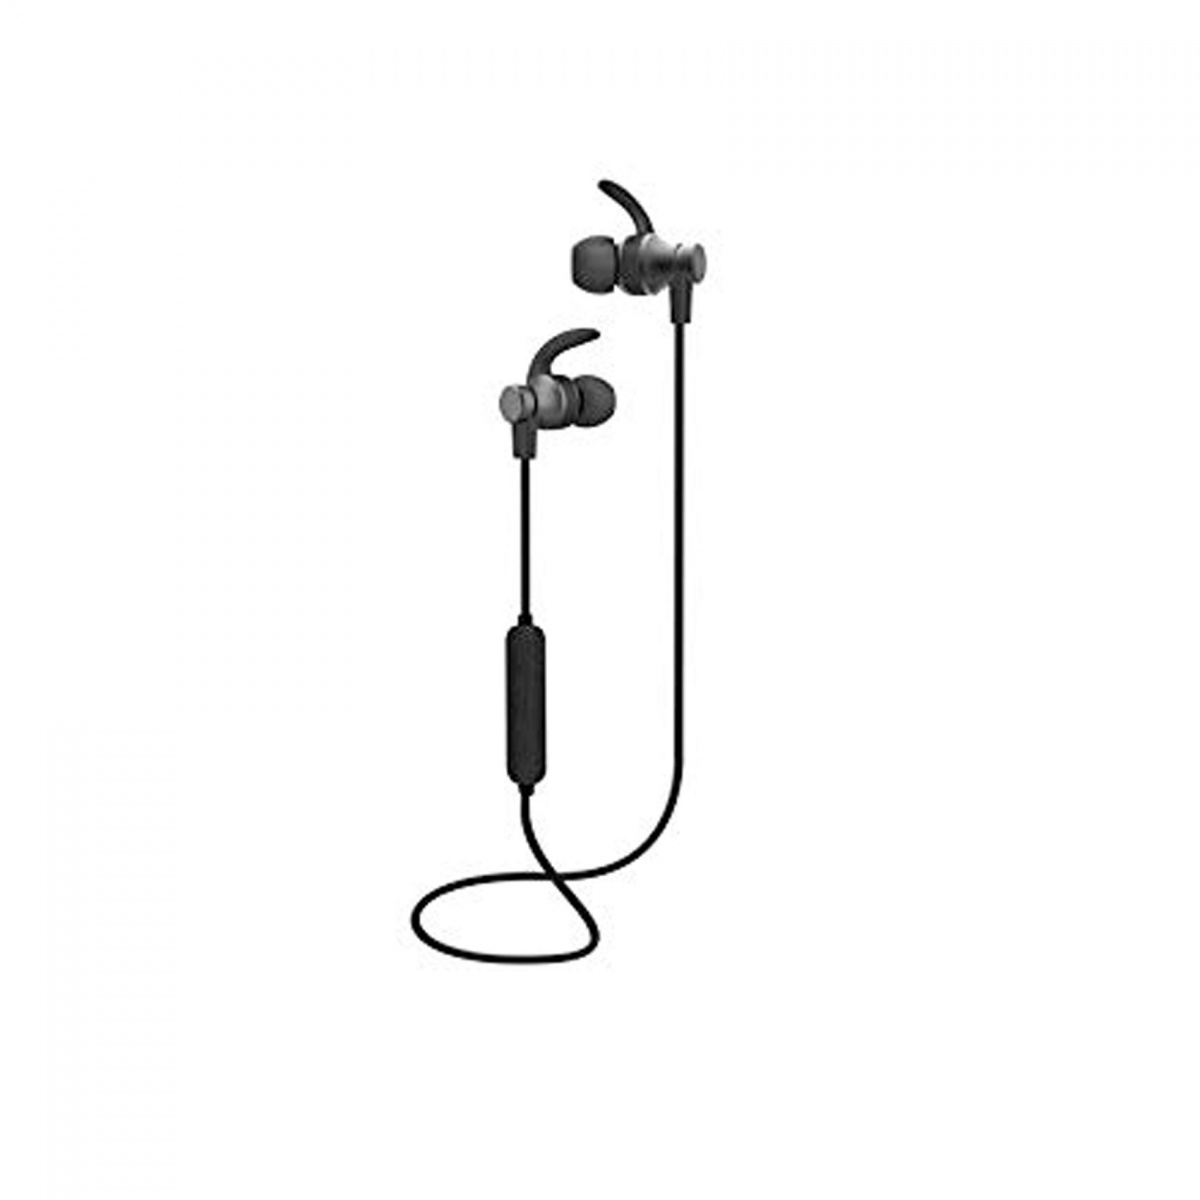 Vidvie 816 Sports Bluetooth Headset - Black